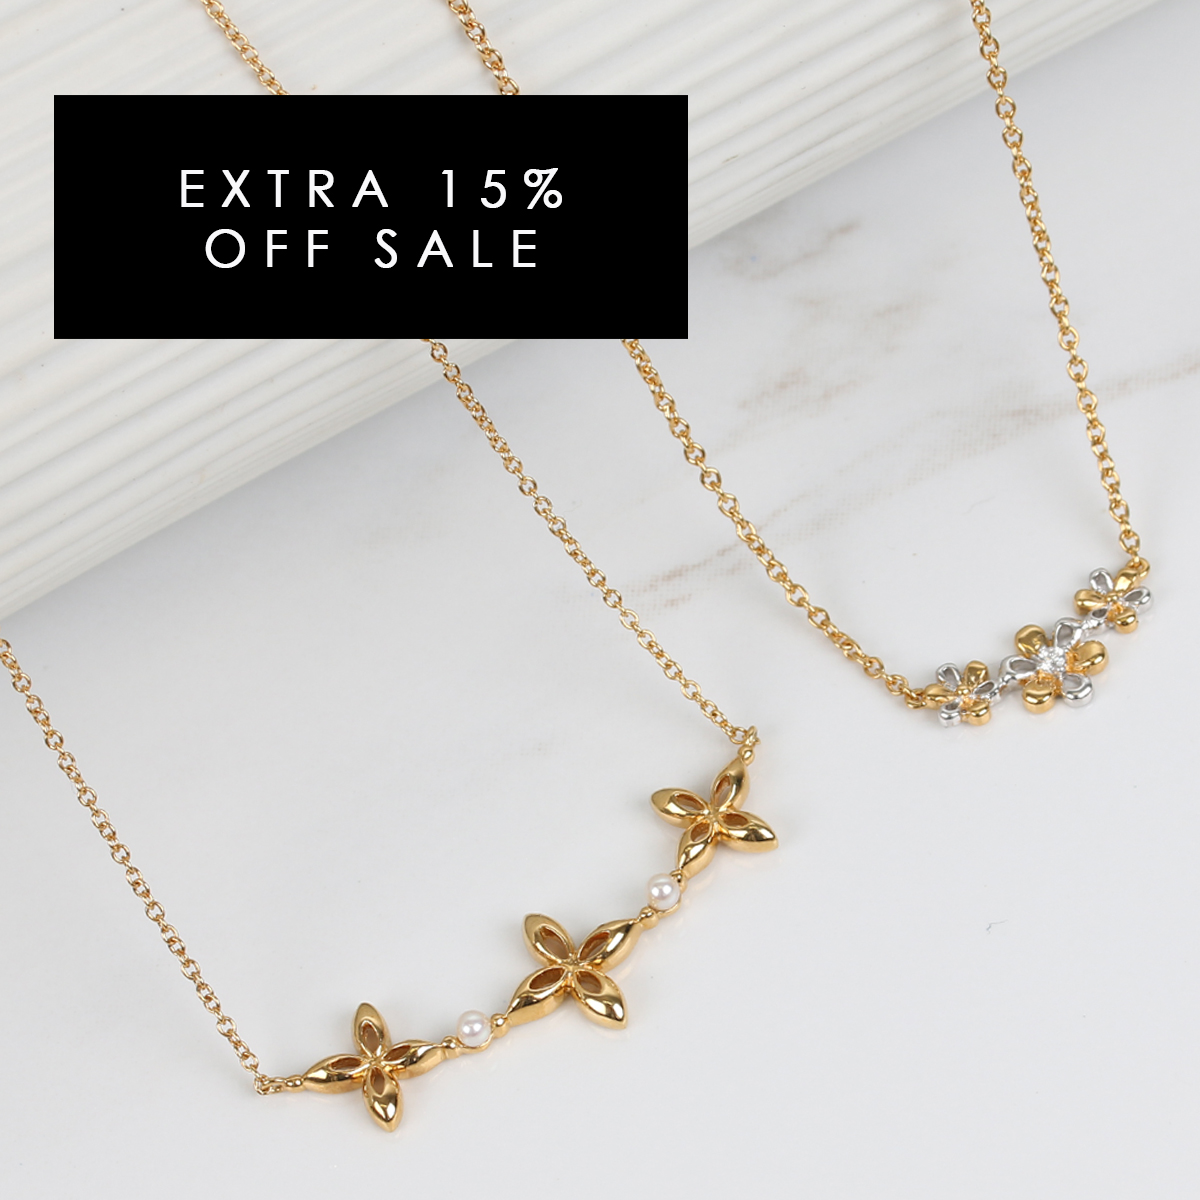 Extra 15% off sale jewellery at Gemondo